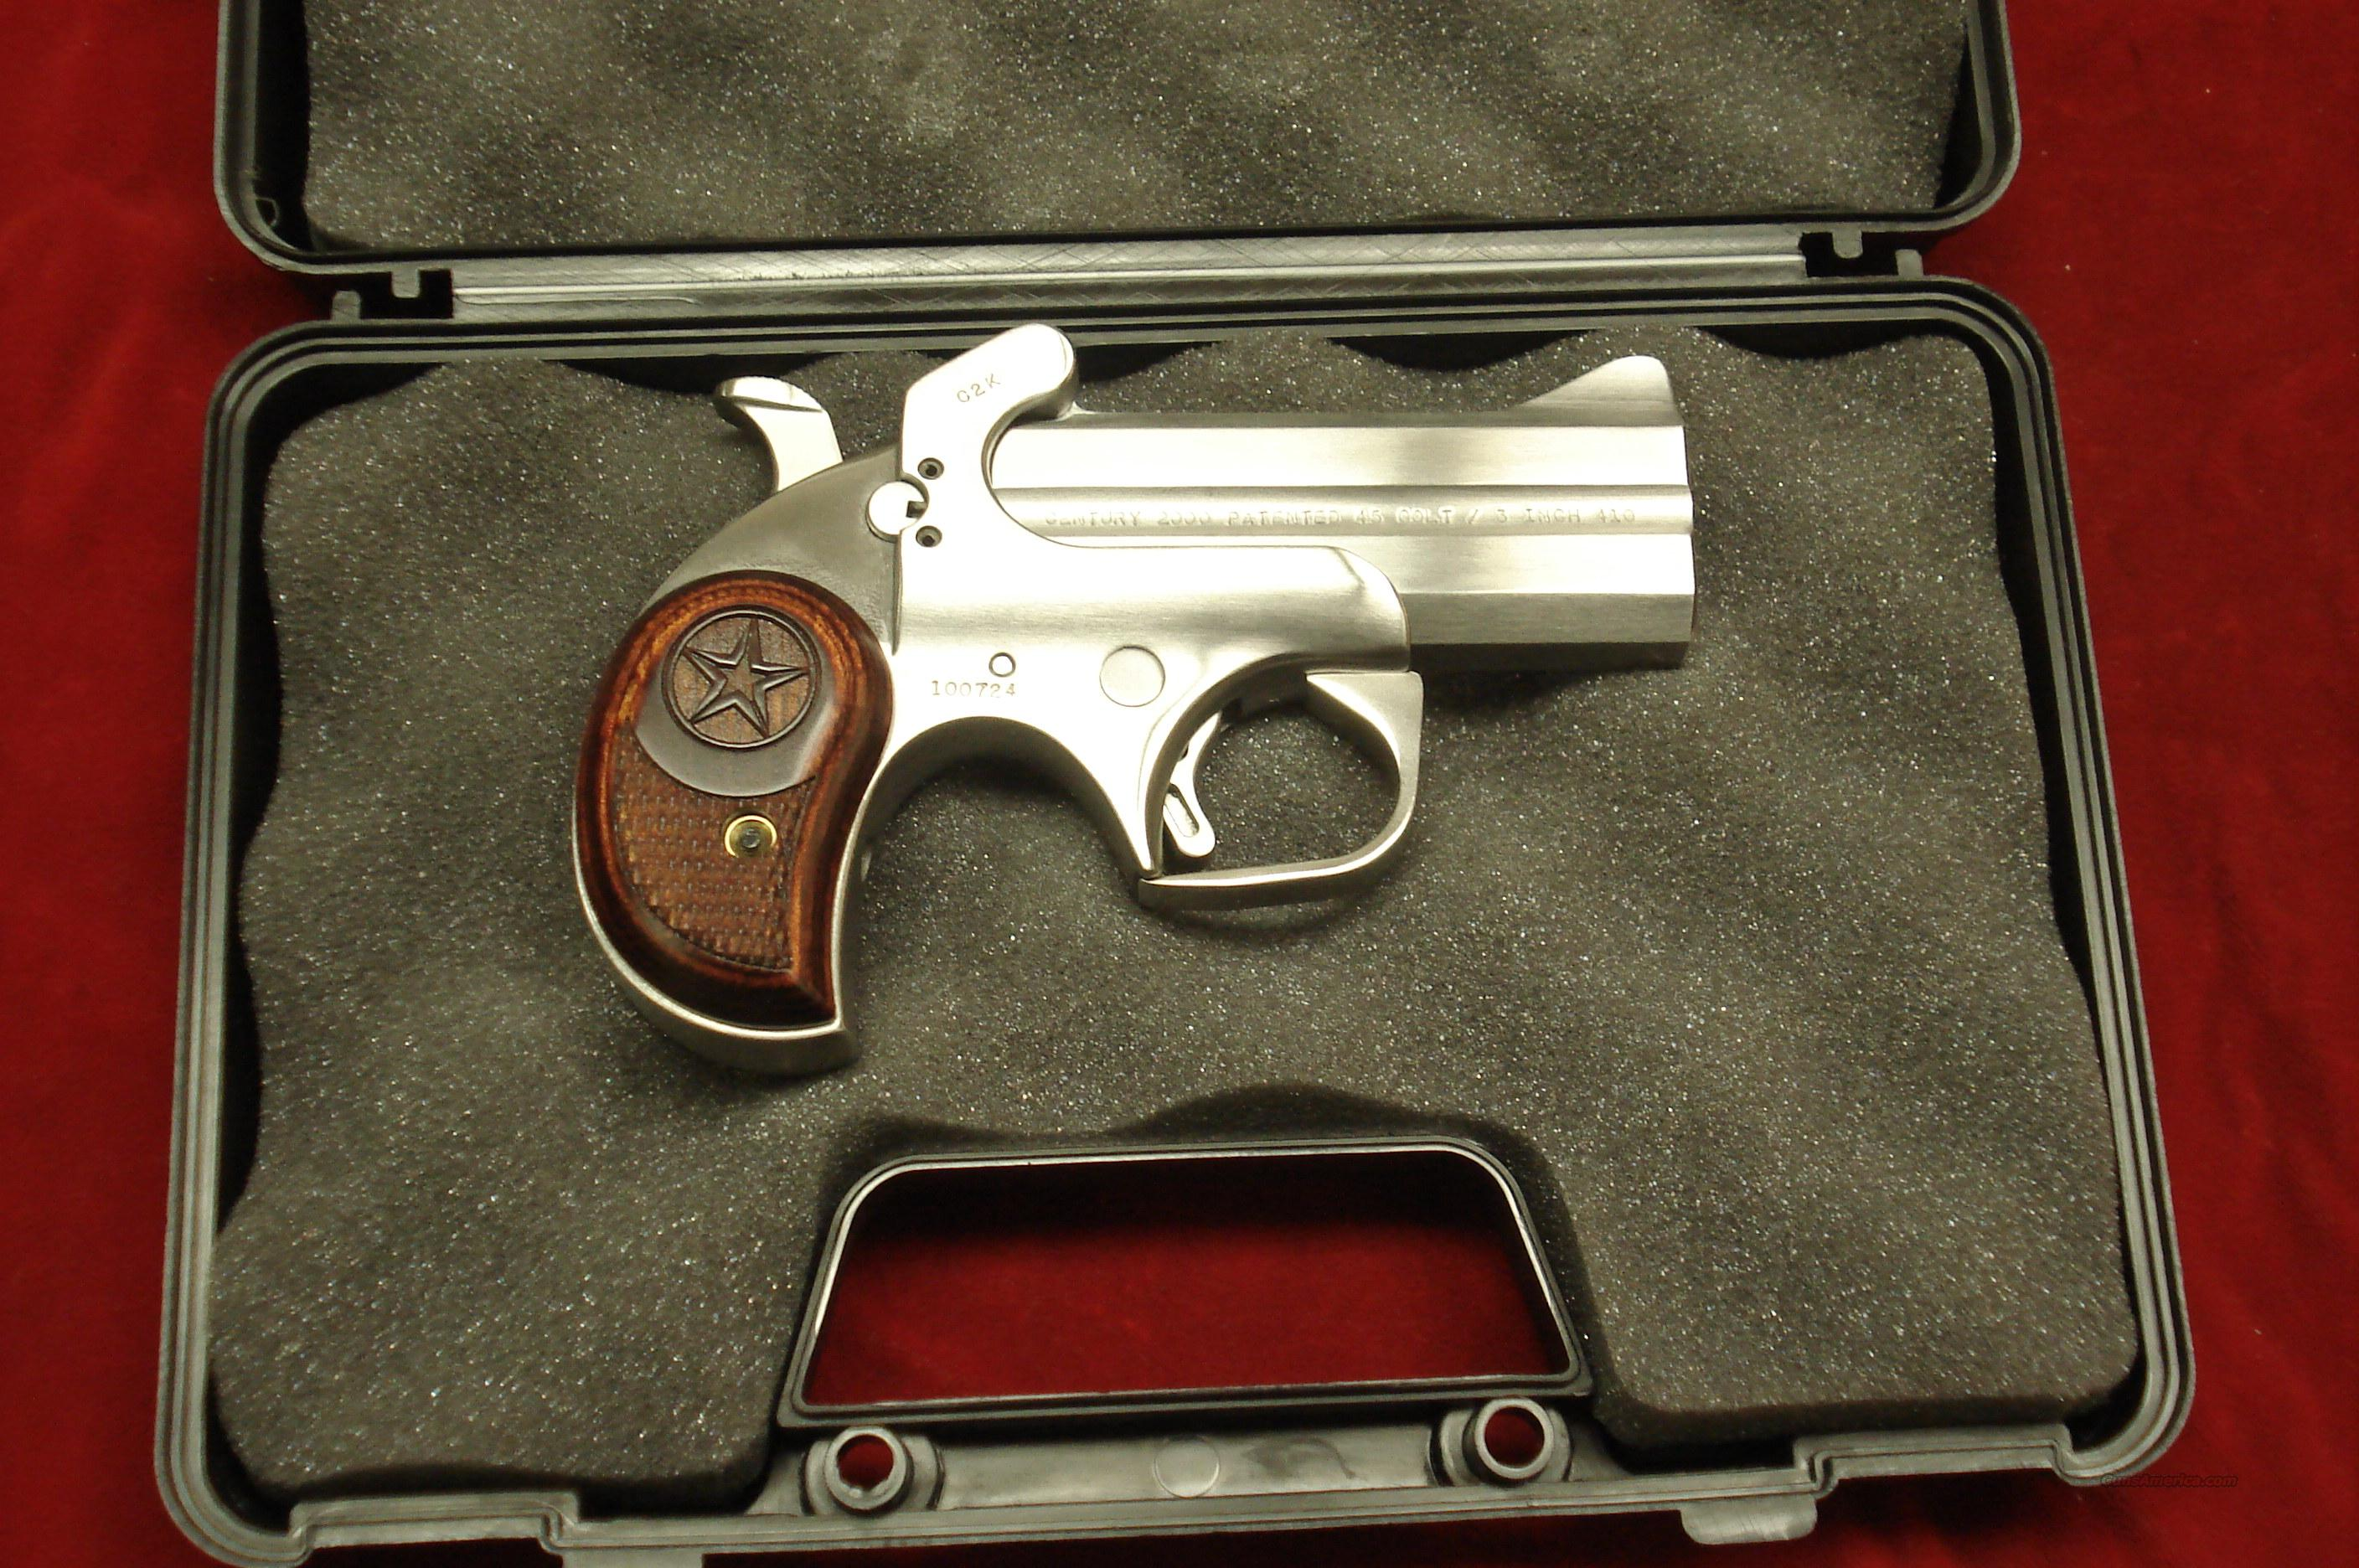 BOND ARMS CENTURY 2000 45COLT/410G STAINLESS DERRINGER NEW  Guns > Pistols > Bond Derringers